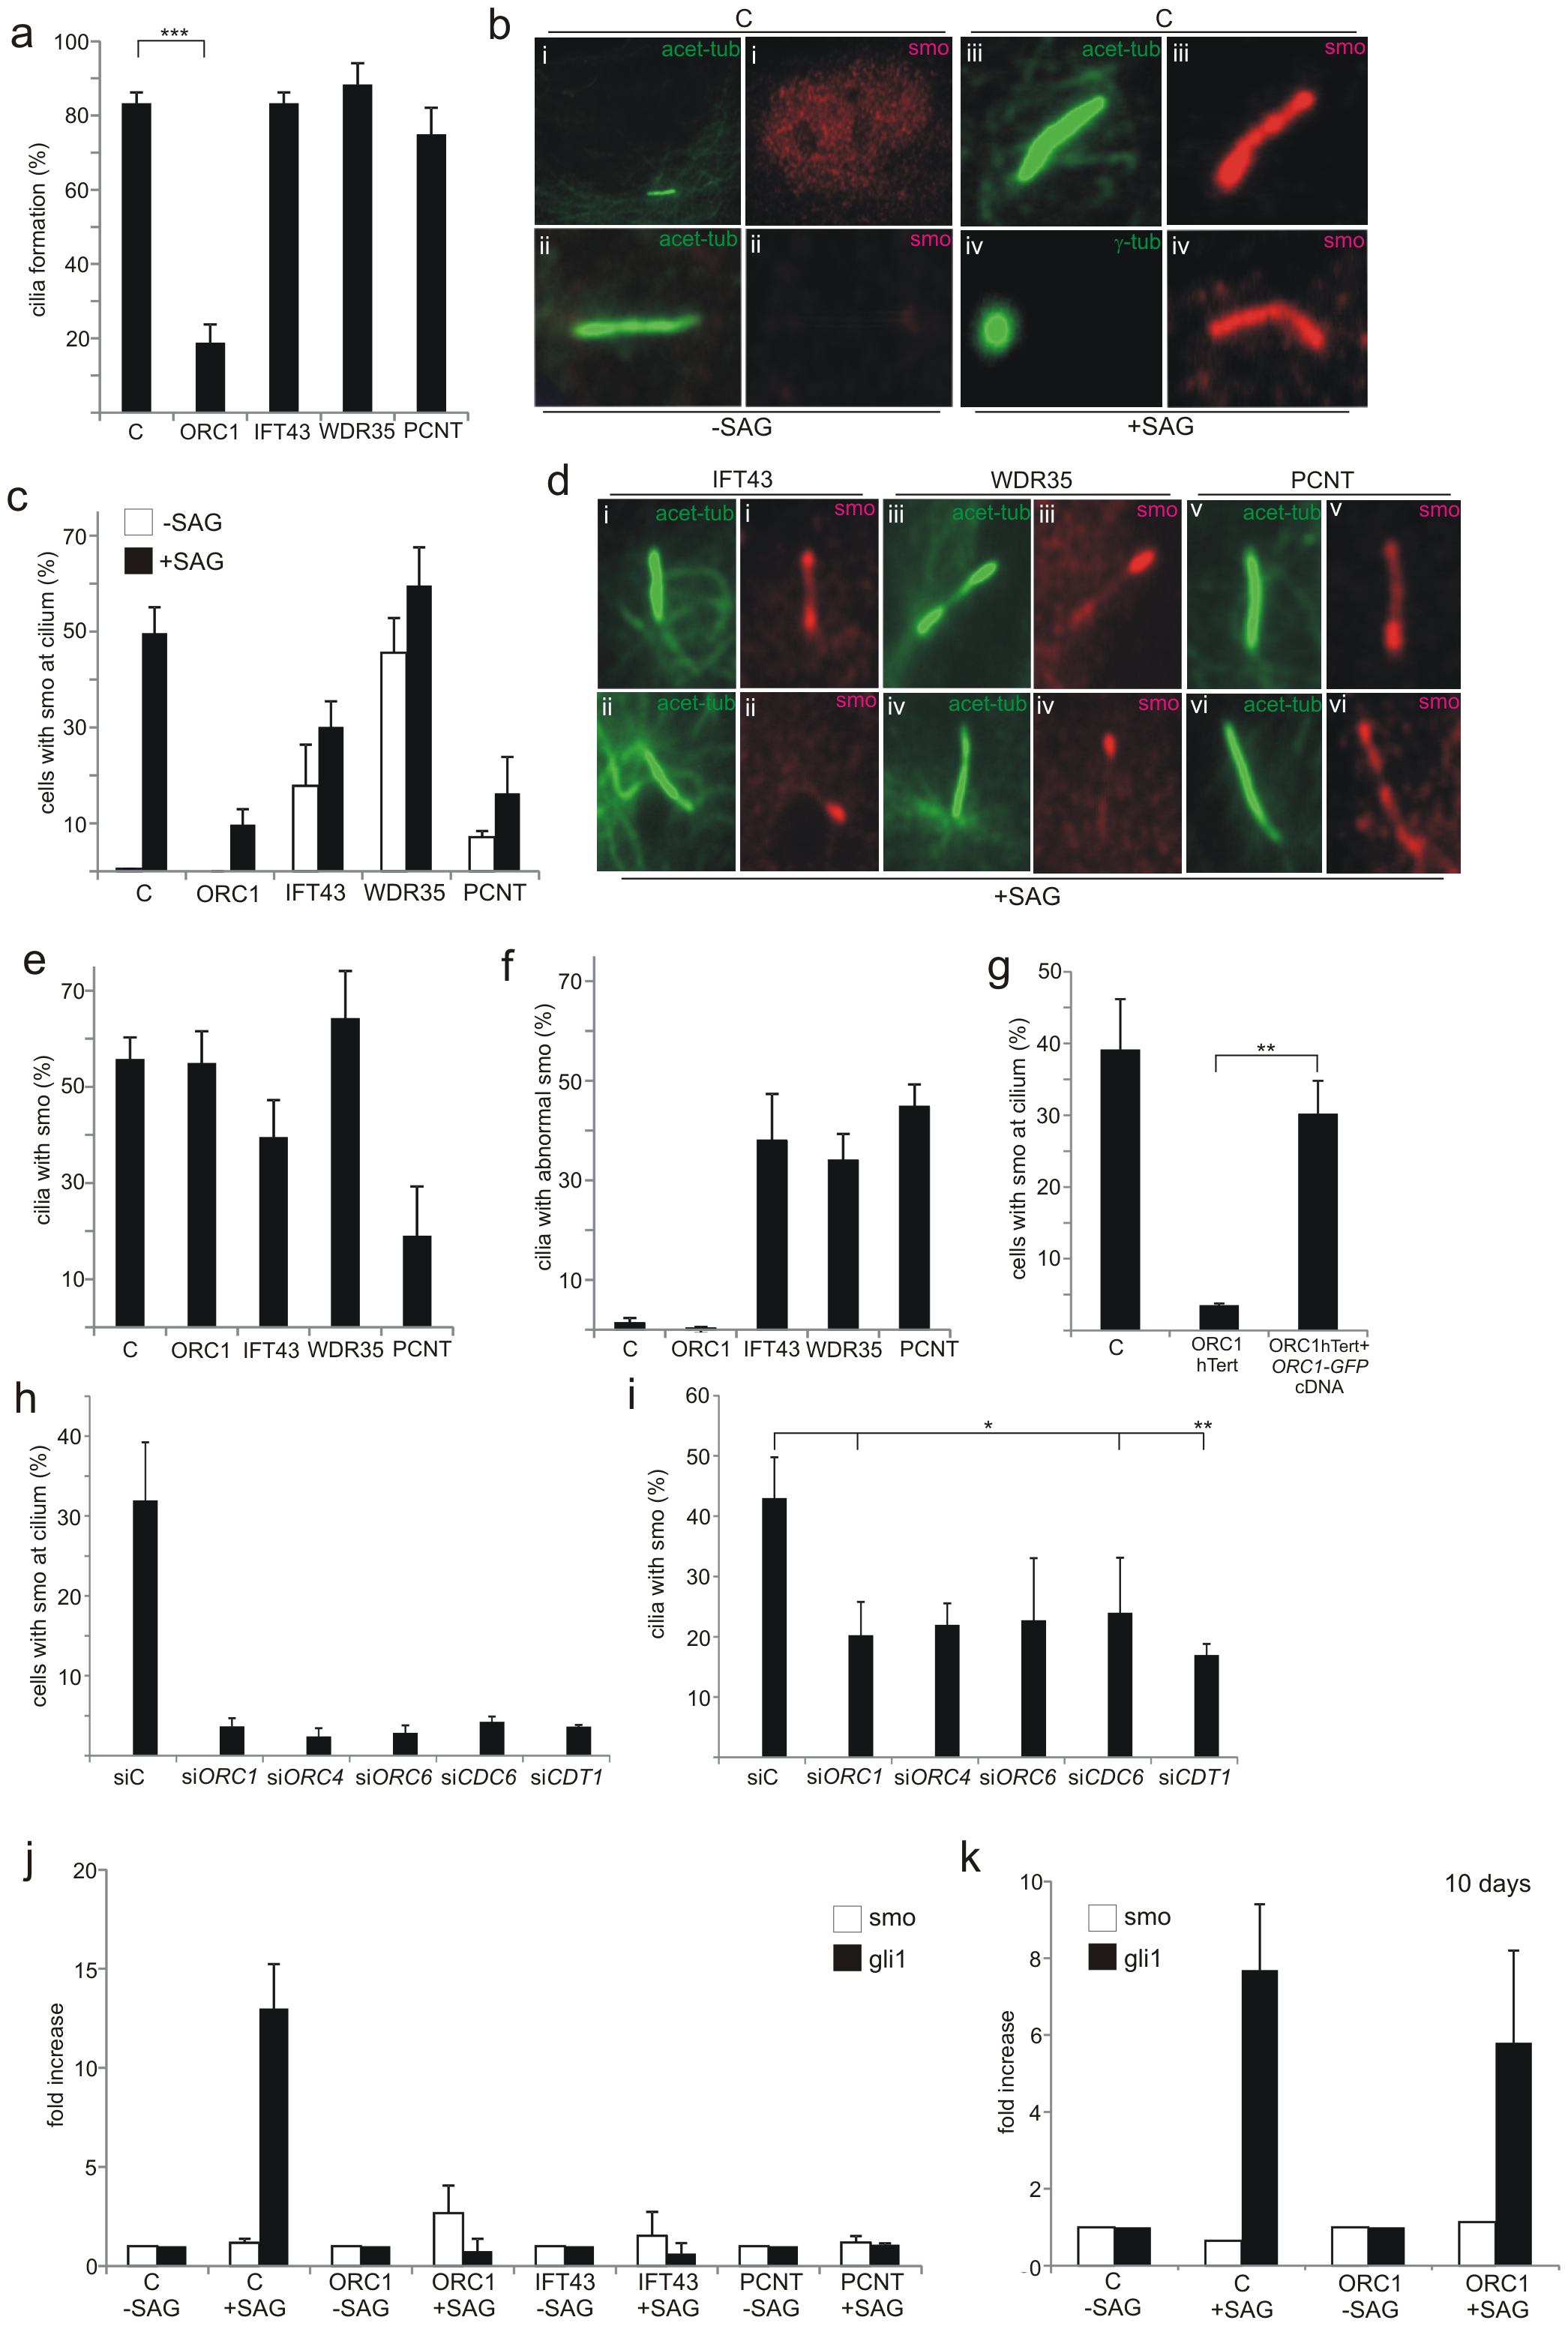 Recruitment of Smo to cilia is deficient in ORC1-deficient fibroblasts.